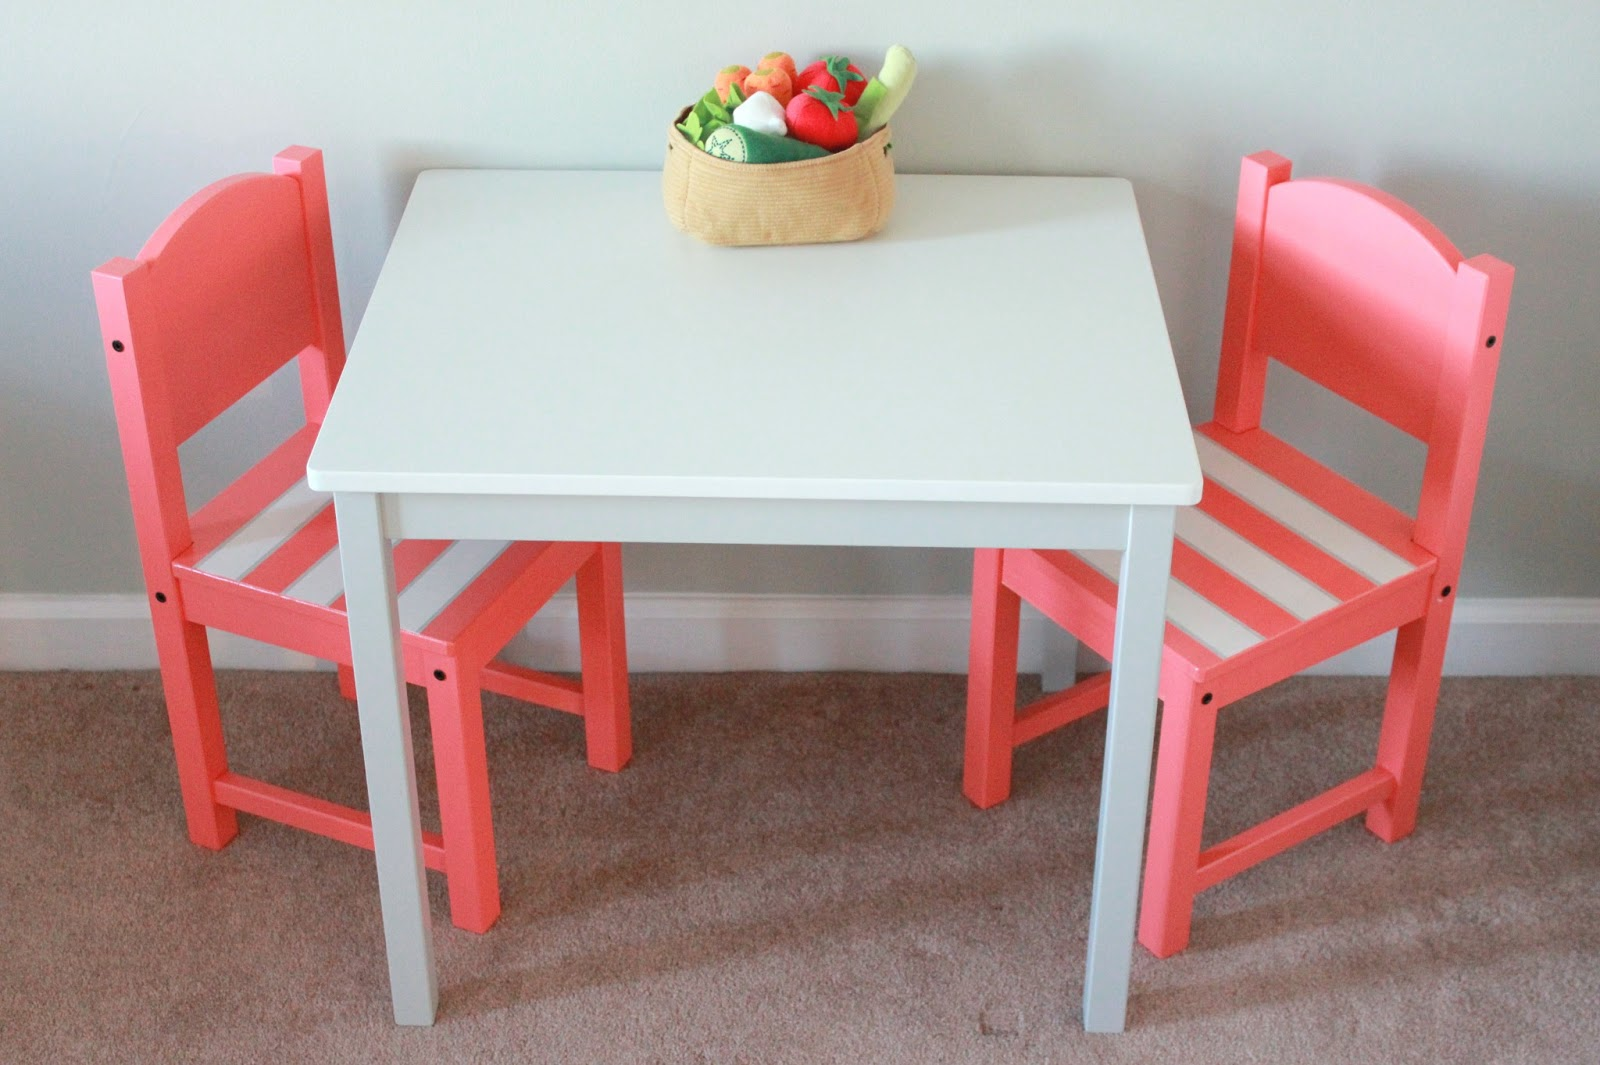 Child table and chairs ikea - Strawberry Swing And Other Things Crafty Lady Children S Table Ikea Hack